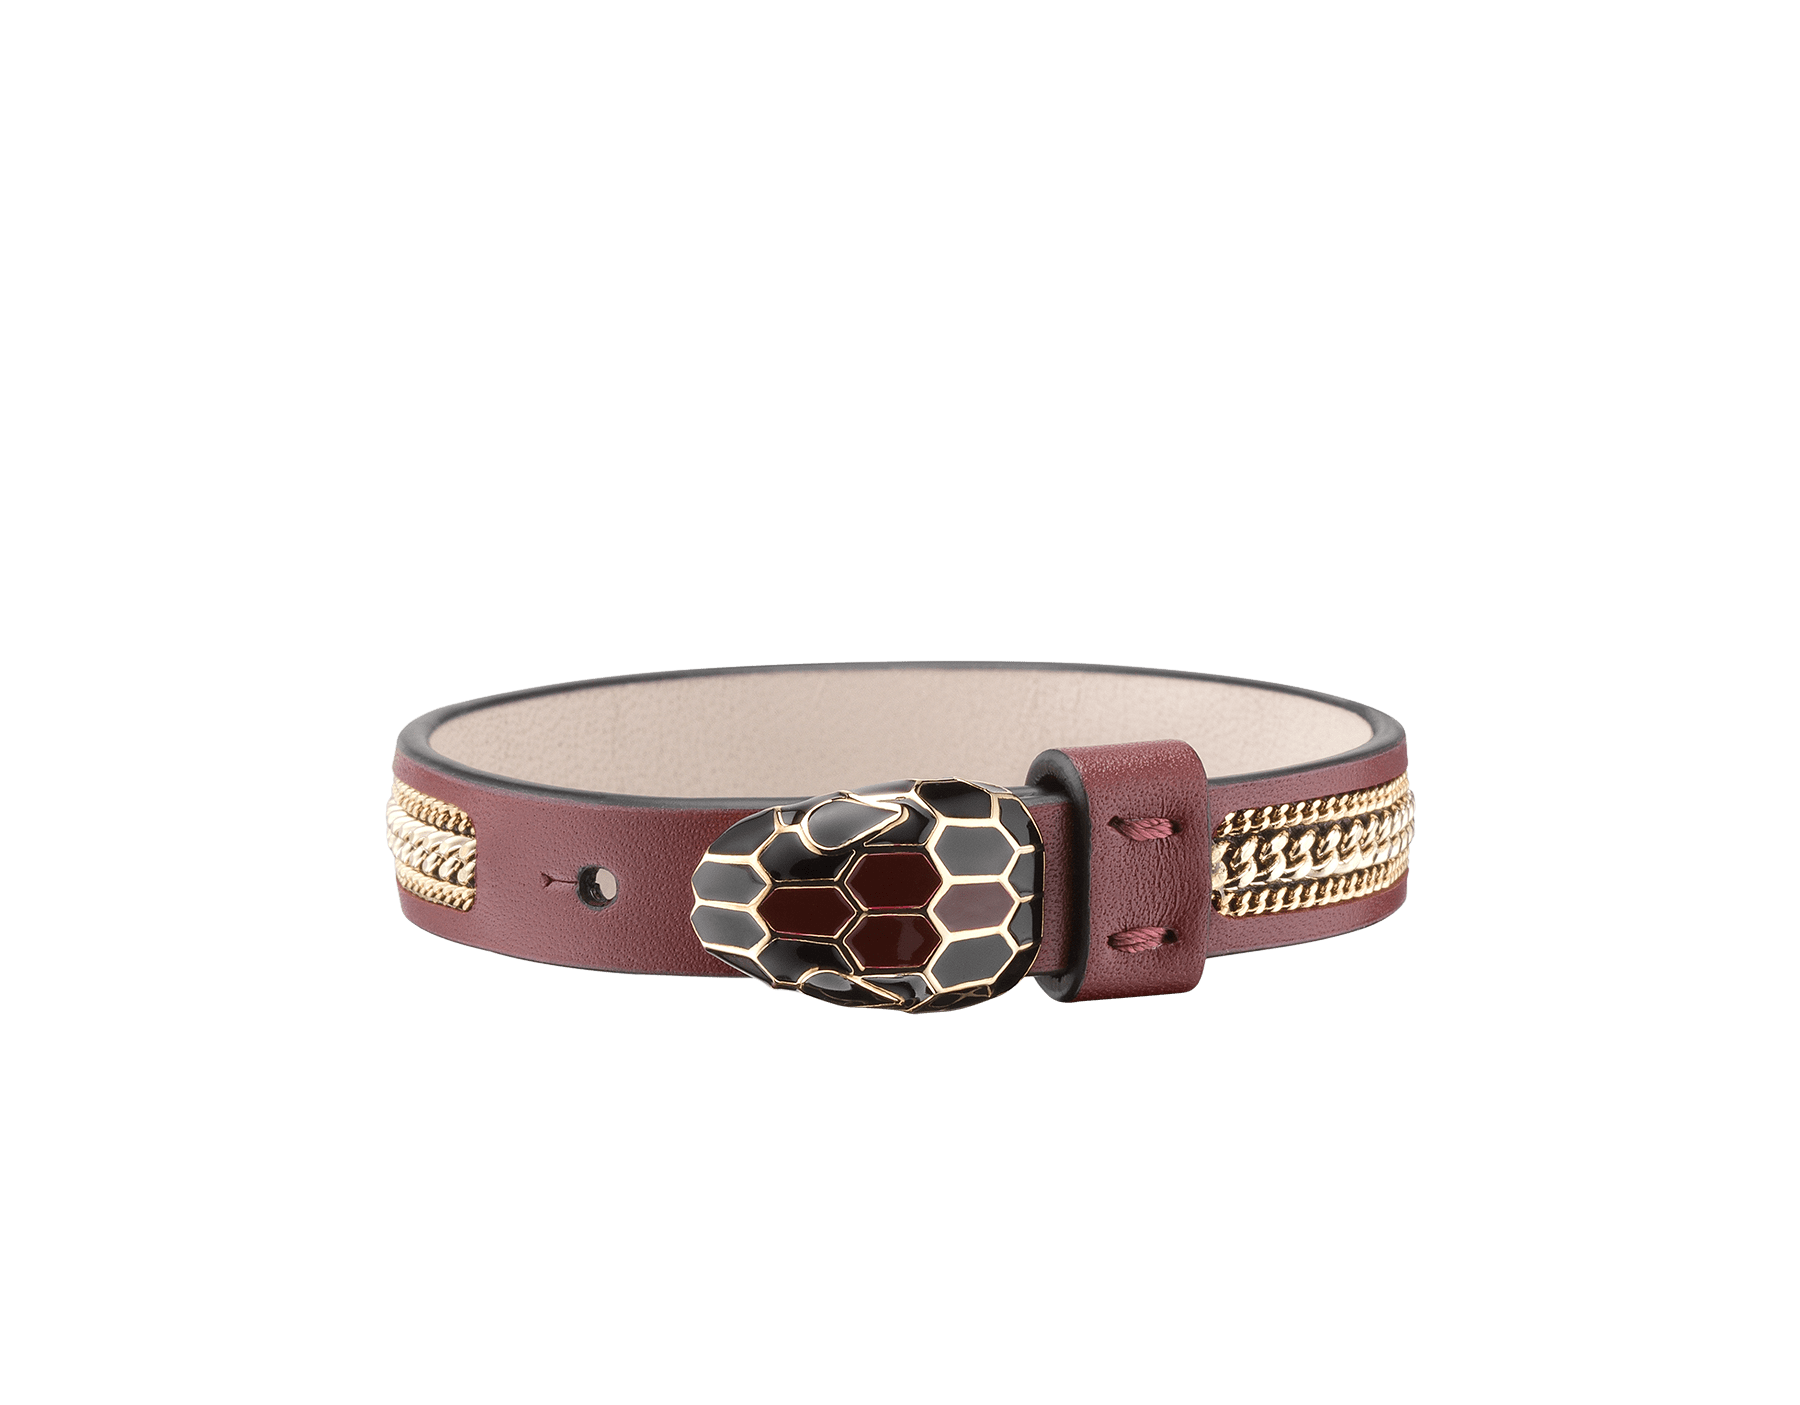 Serpenti Forever bracelet in Roman garnet calf leather embellished with a three-chain motif. Light rose gold plated snakehead closure with black and Roman garnet enamel, and black enamel eyes. BRACLT-SERPENTIU-3Cb image 1